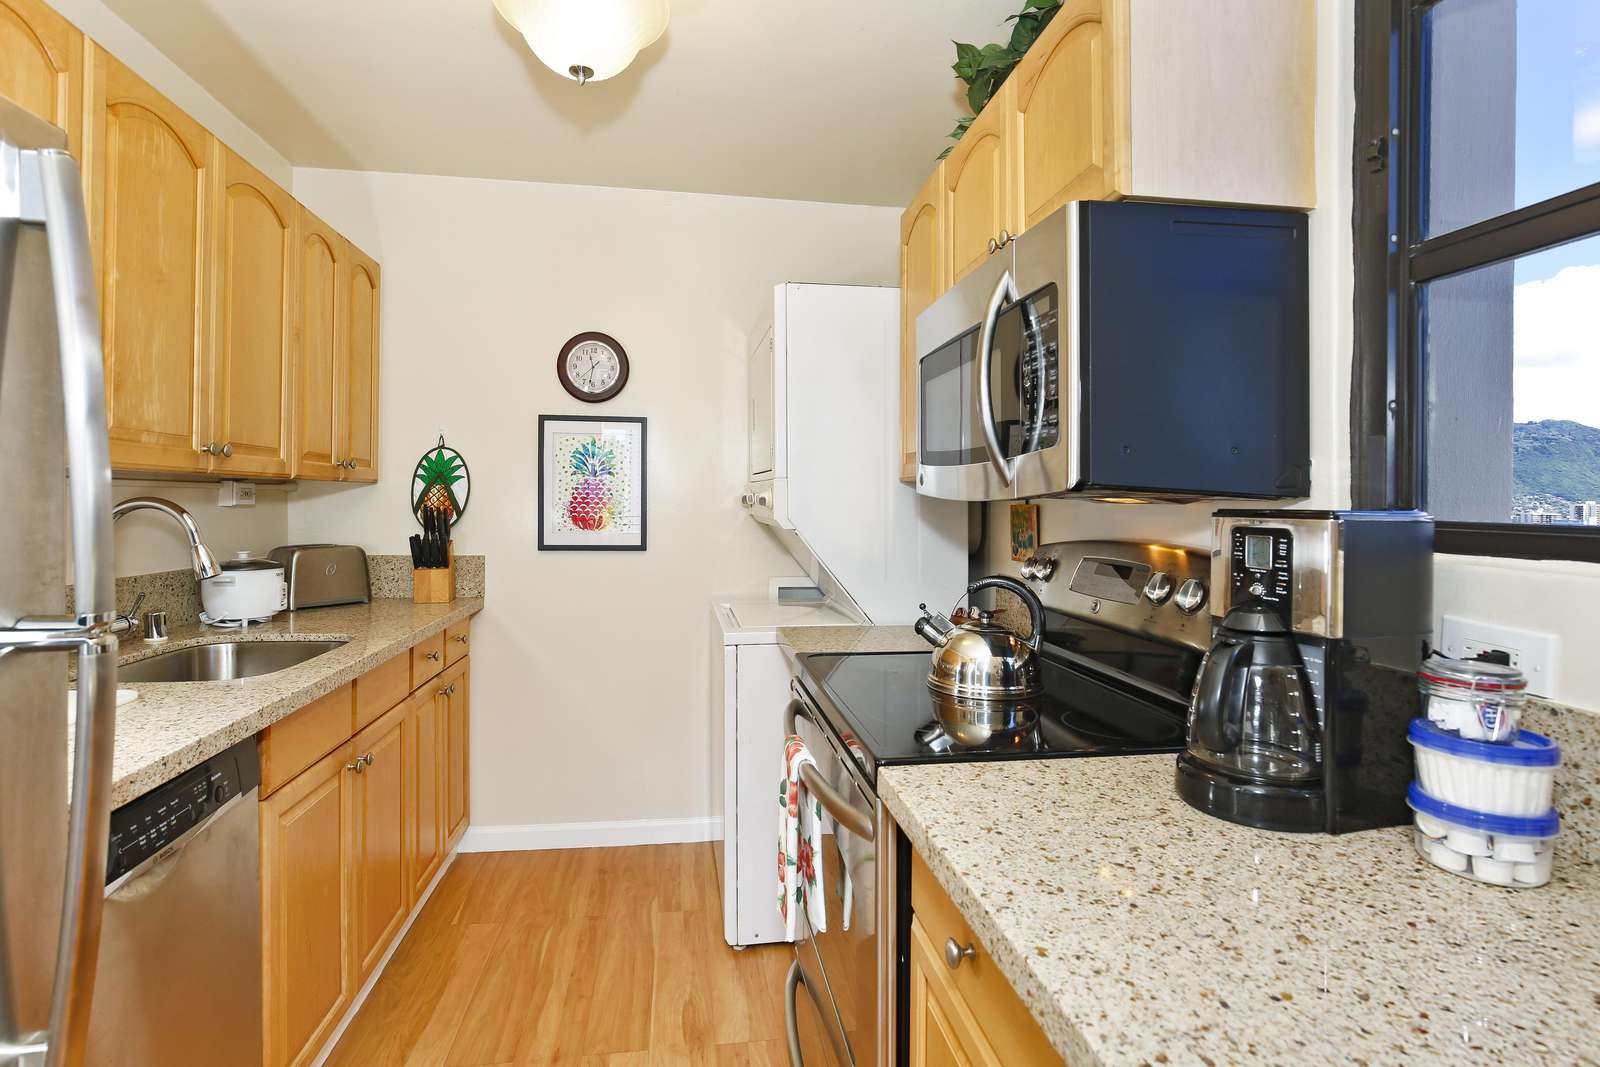 Clean, Bright & Well equipped kitchen